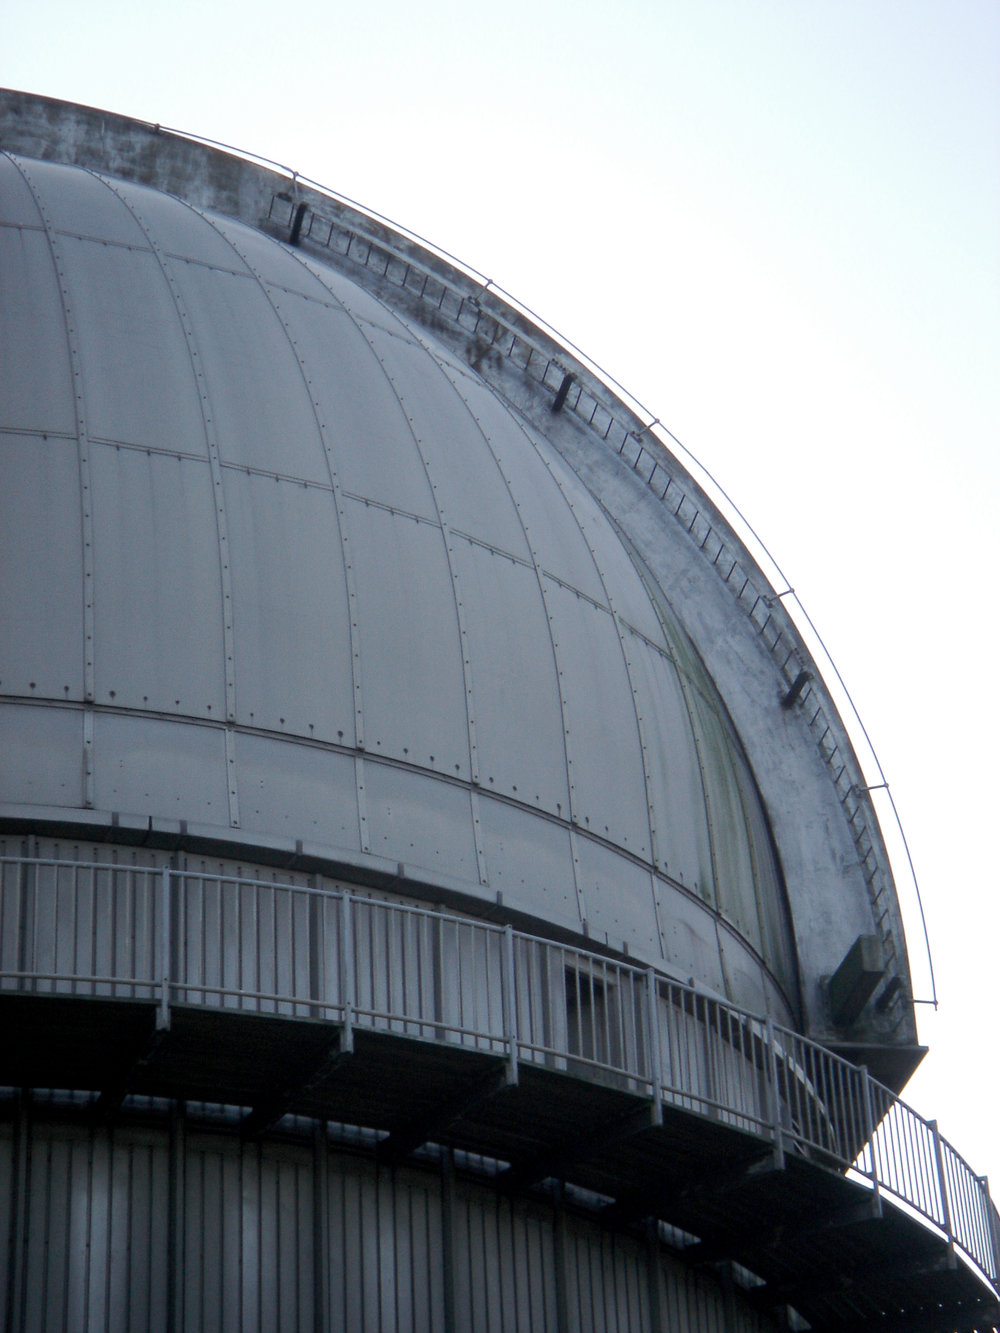 FINE architecture_AstronomicalObservatory_Photo 6.jpg